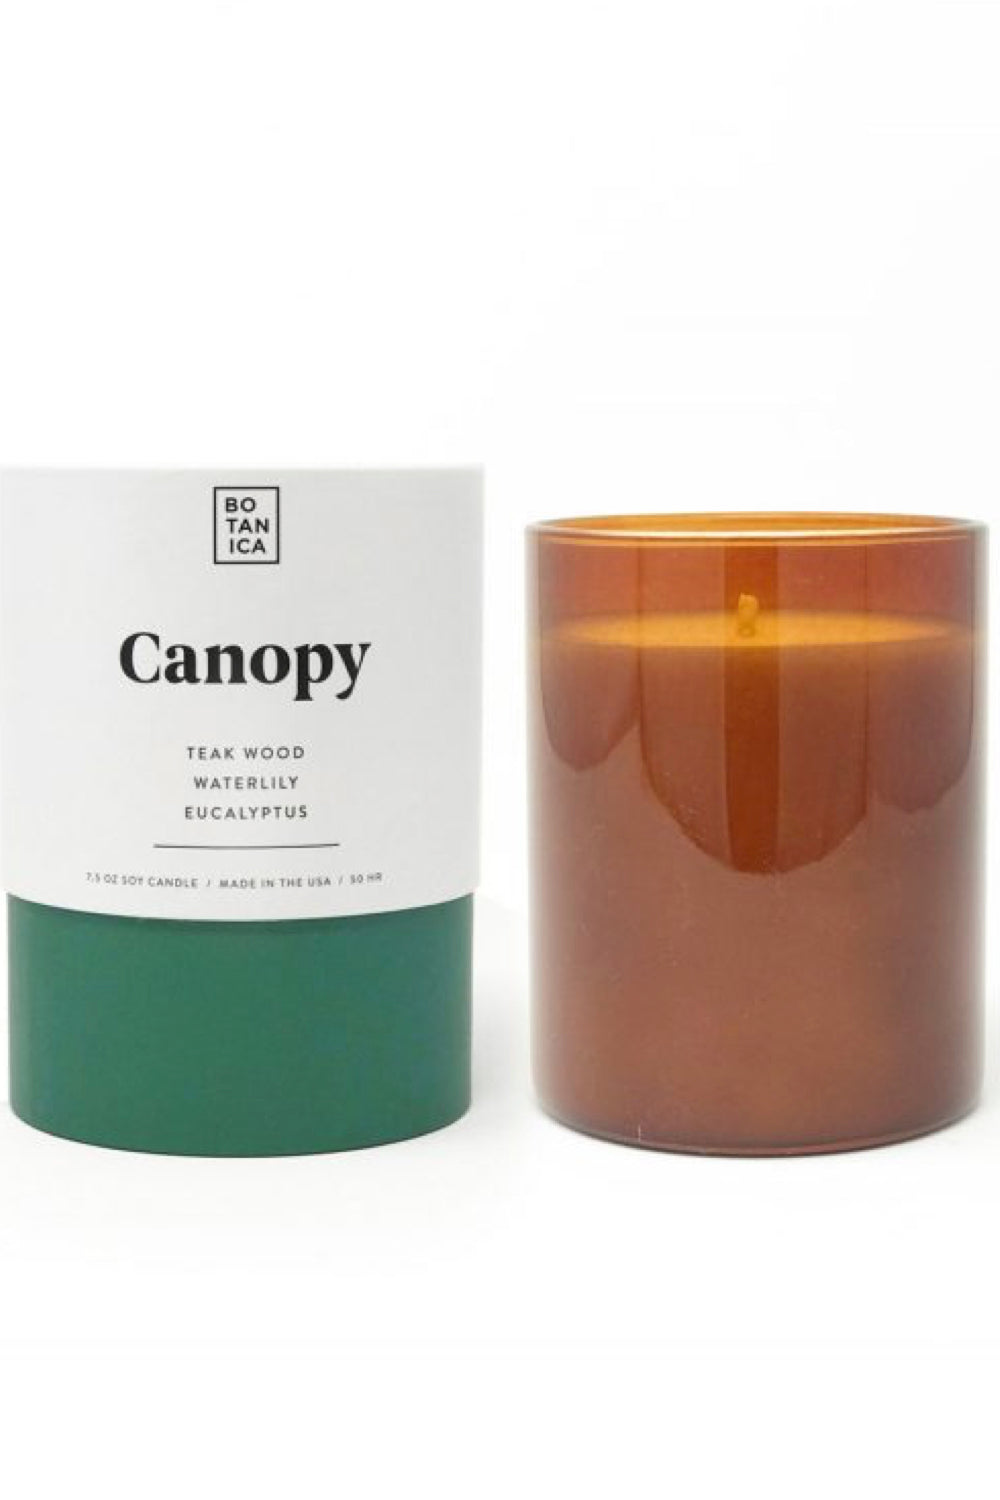 Botanica Medium Candle Canopy